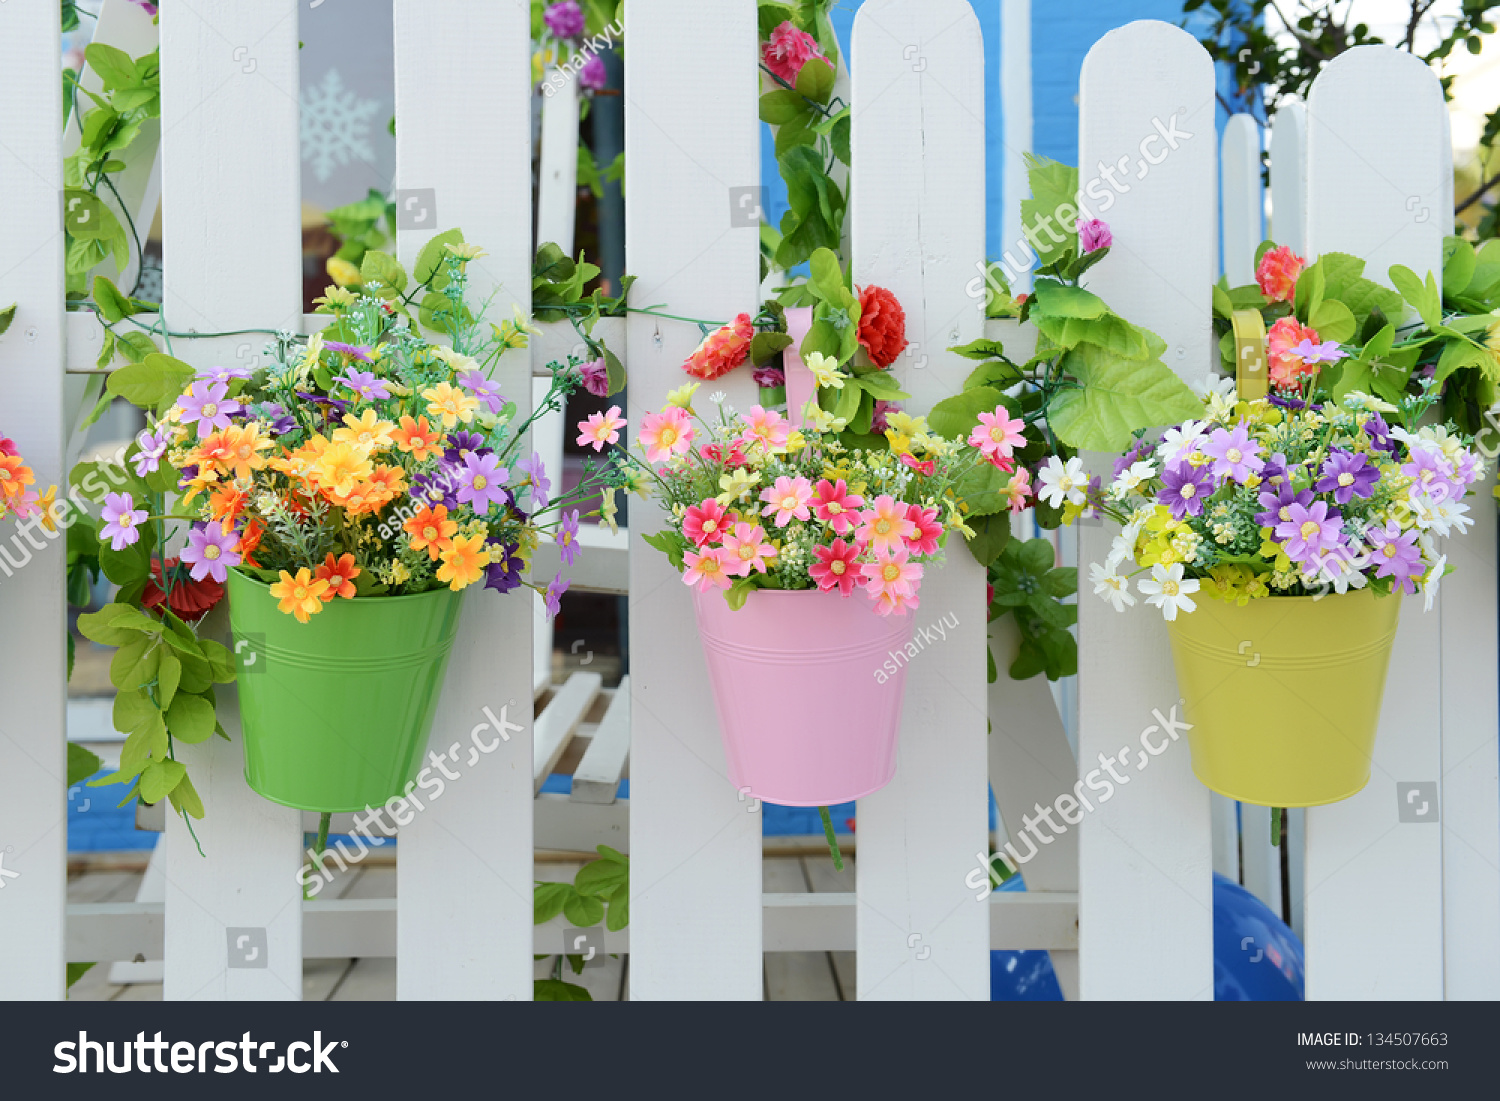 Hanging flower pots fence stock photo 134507663 shutterstock - Flower pots to hang on fence ...